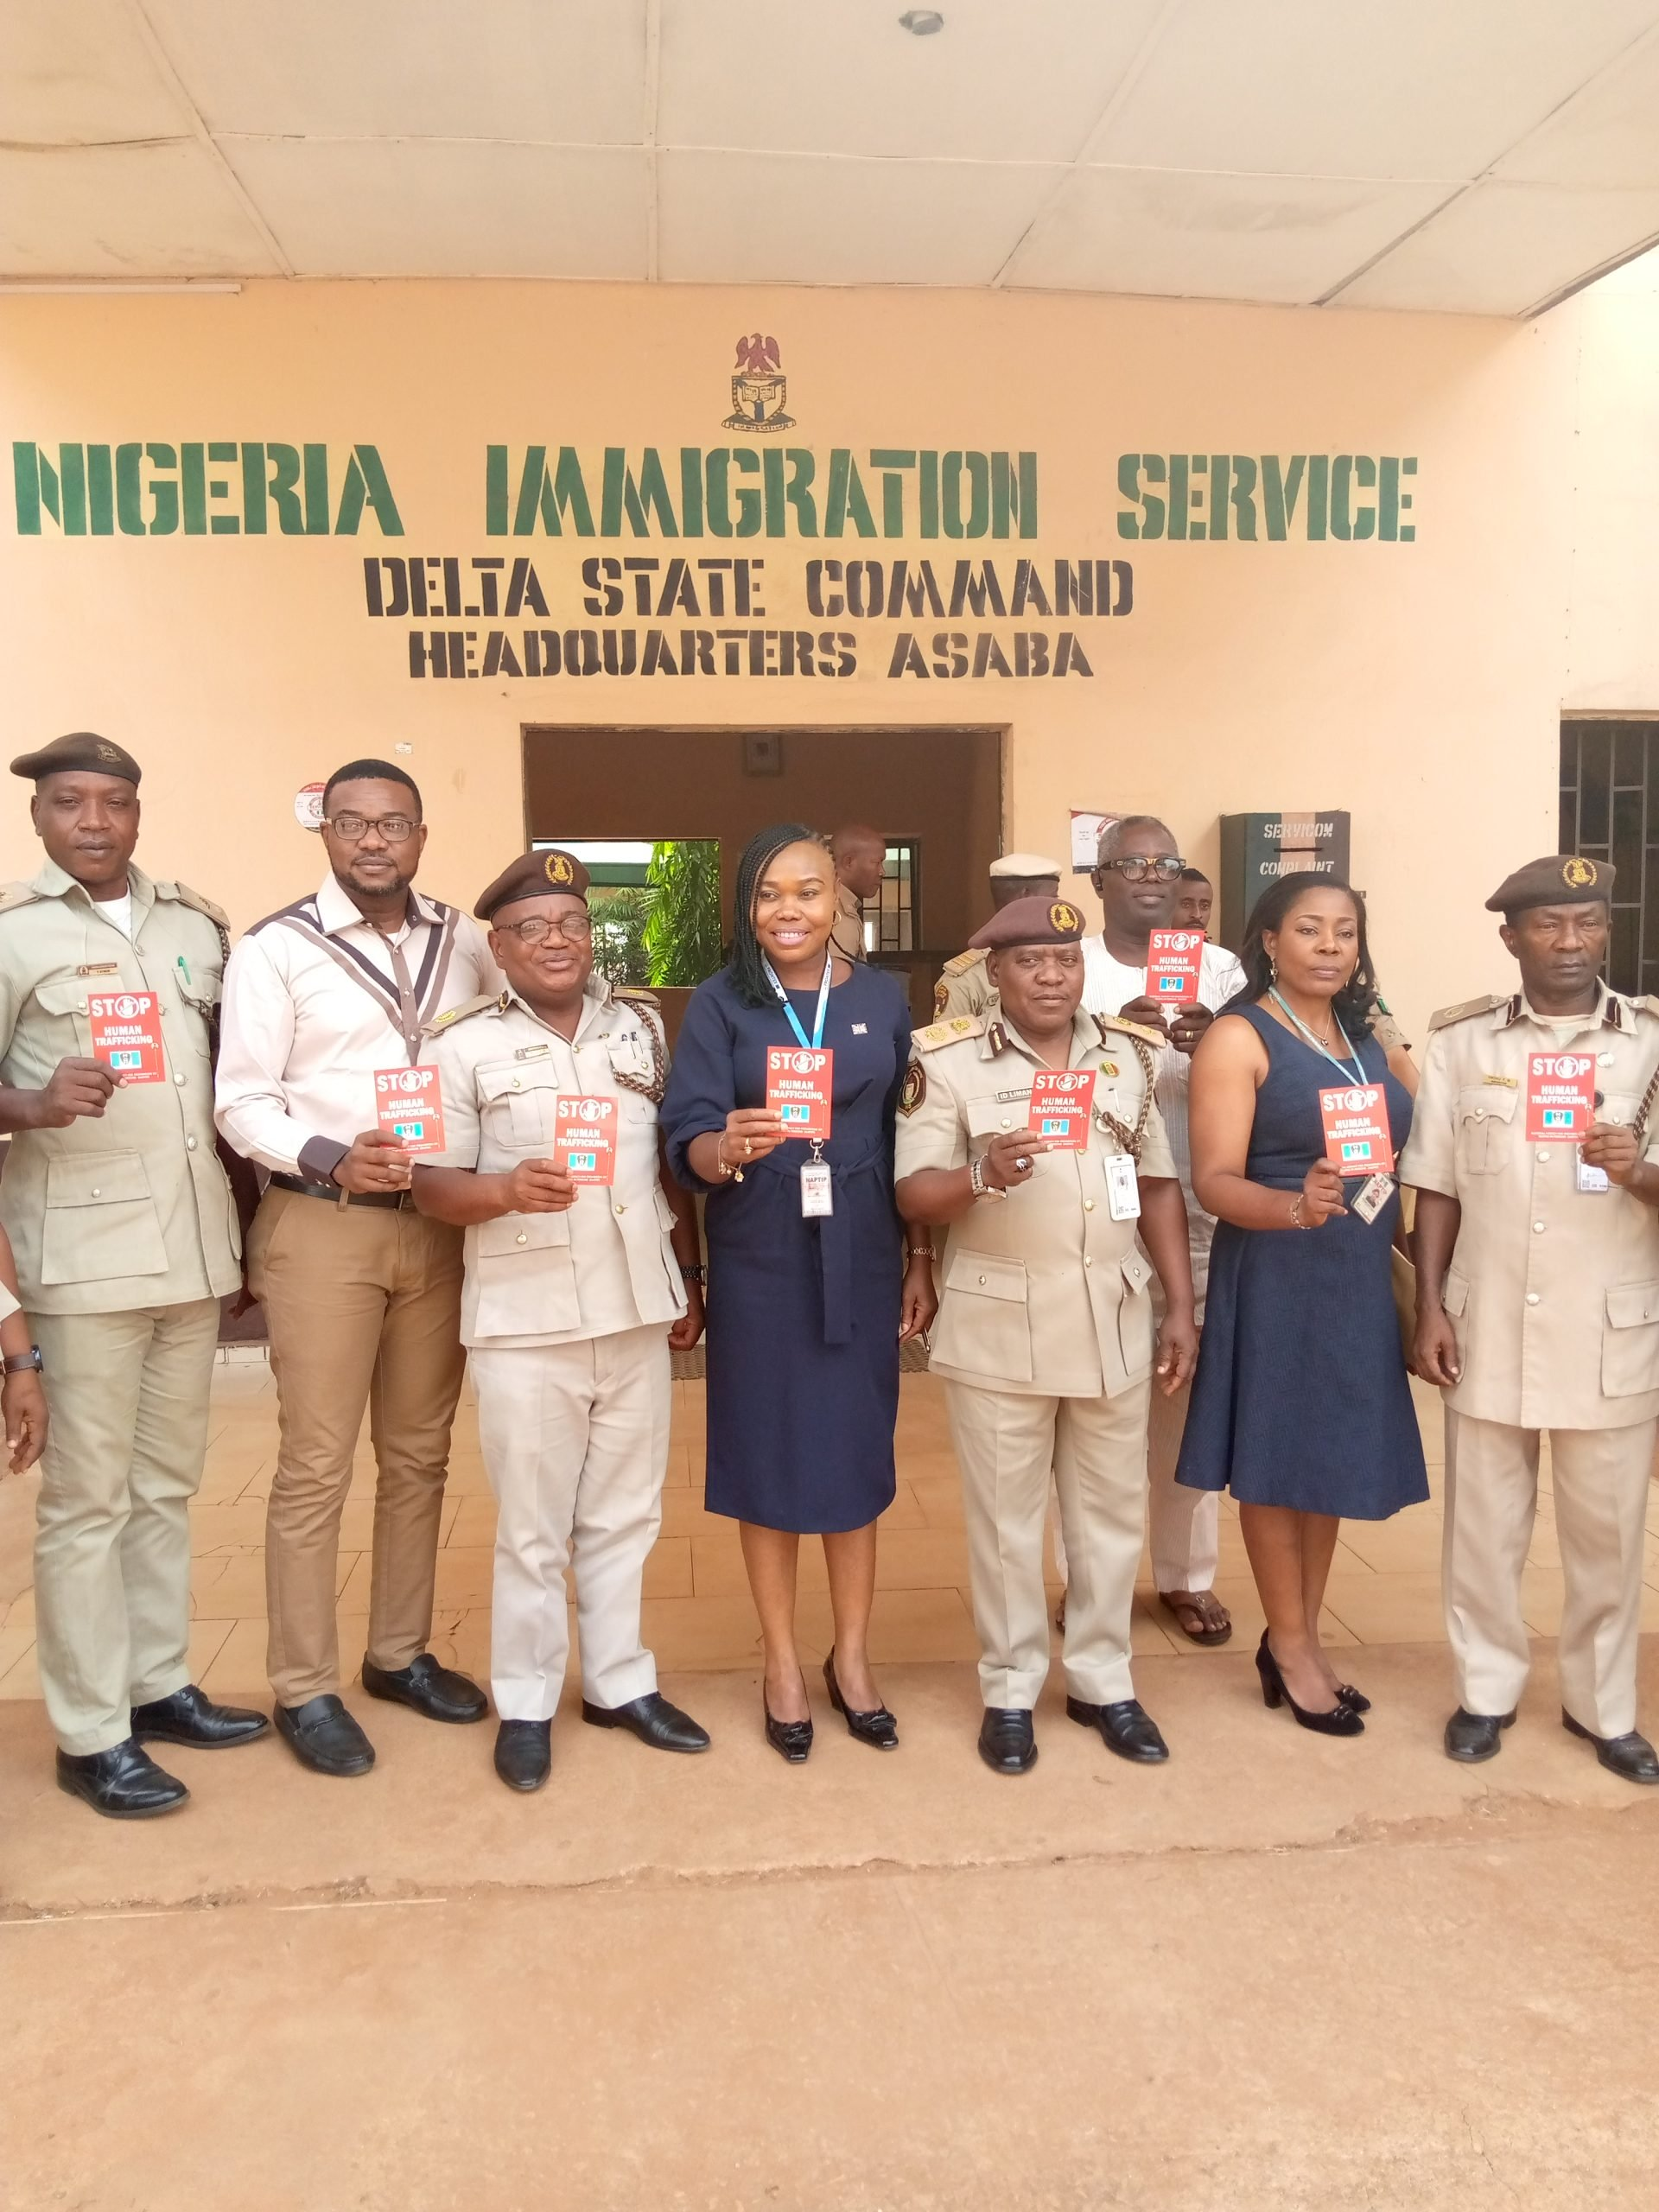 The Zonal Commander of NAPTIP, Mrs Ijeoma Uduak (Centre) with the Comptroller of Nigeria Immigration Service (NIS), Ibrahim Liman, with other officers of NAPTIP and officers of NIS in Asaba on Tuesday.